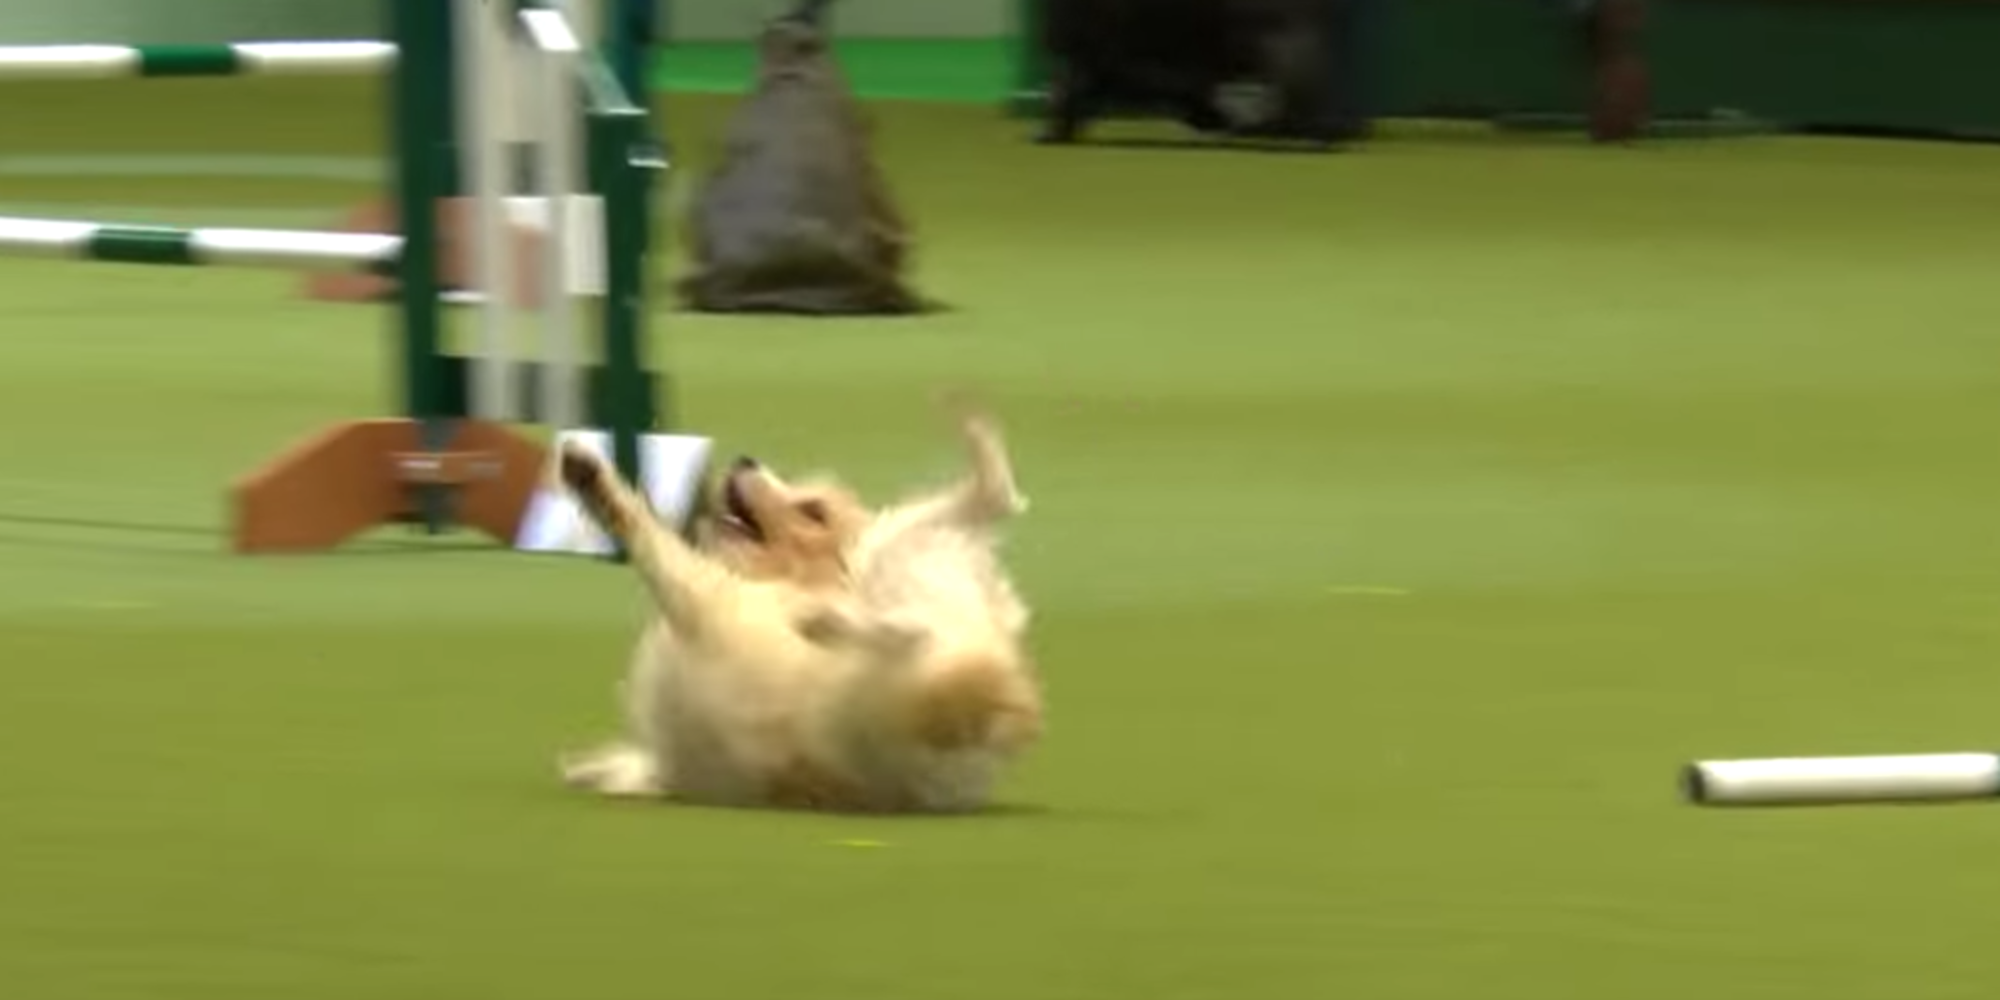 Tumbling jack russell wins hearts after hilariously bad dog show run